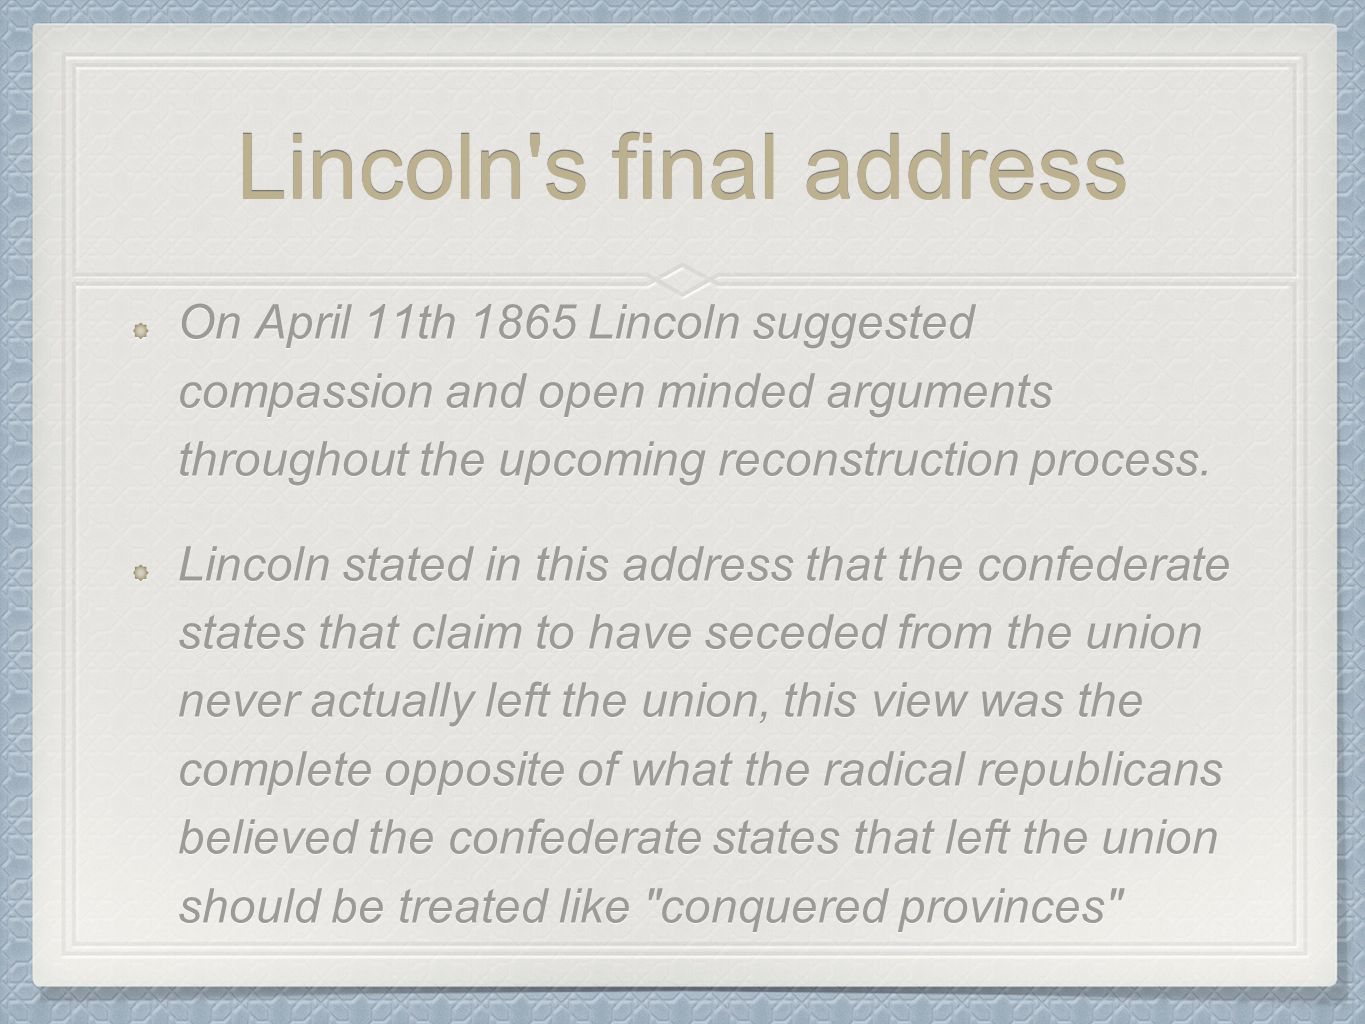 Lincoln's final address On April 11th 1865 Lincoln suggested compassion and open minded arguments throughout the upcoming reconstruction process. Linc